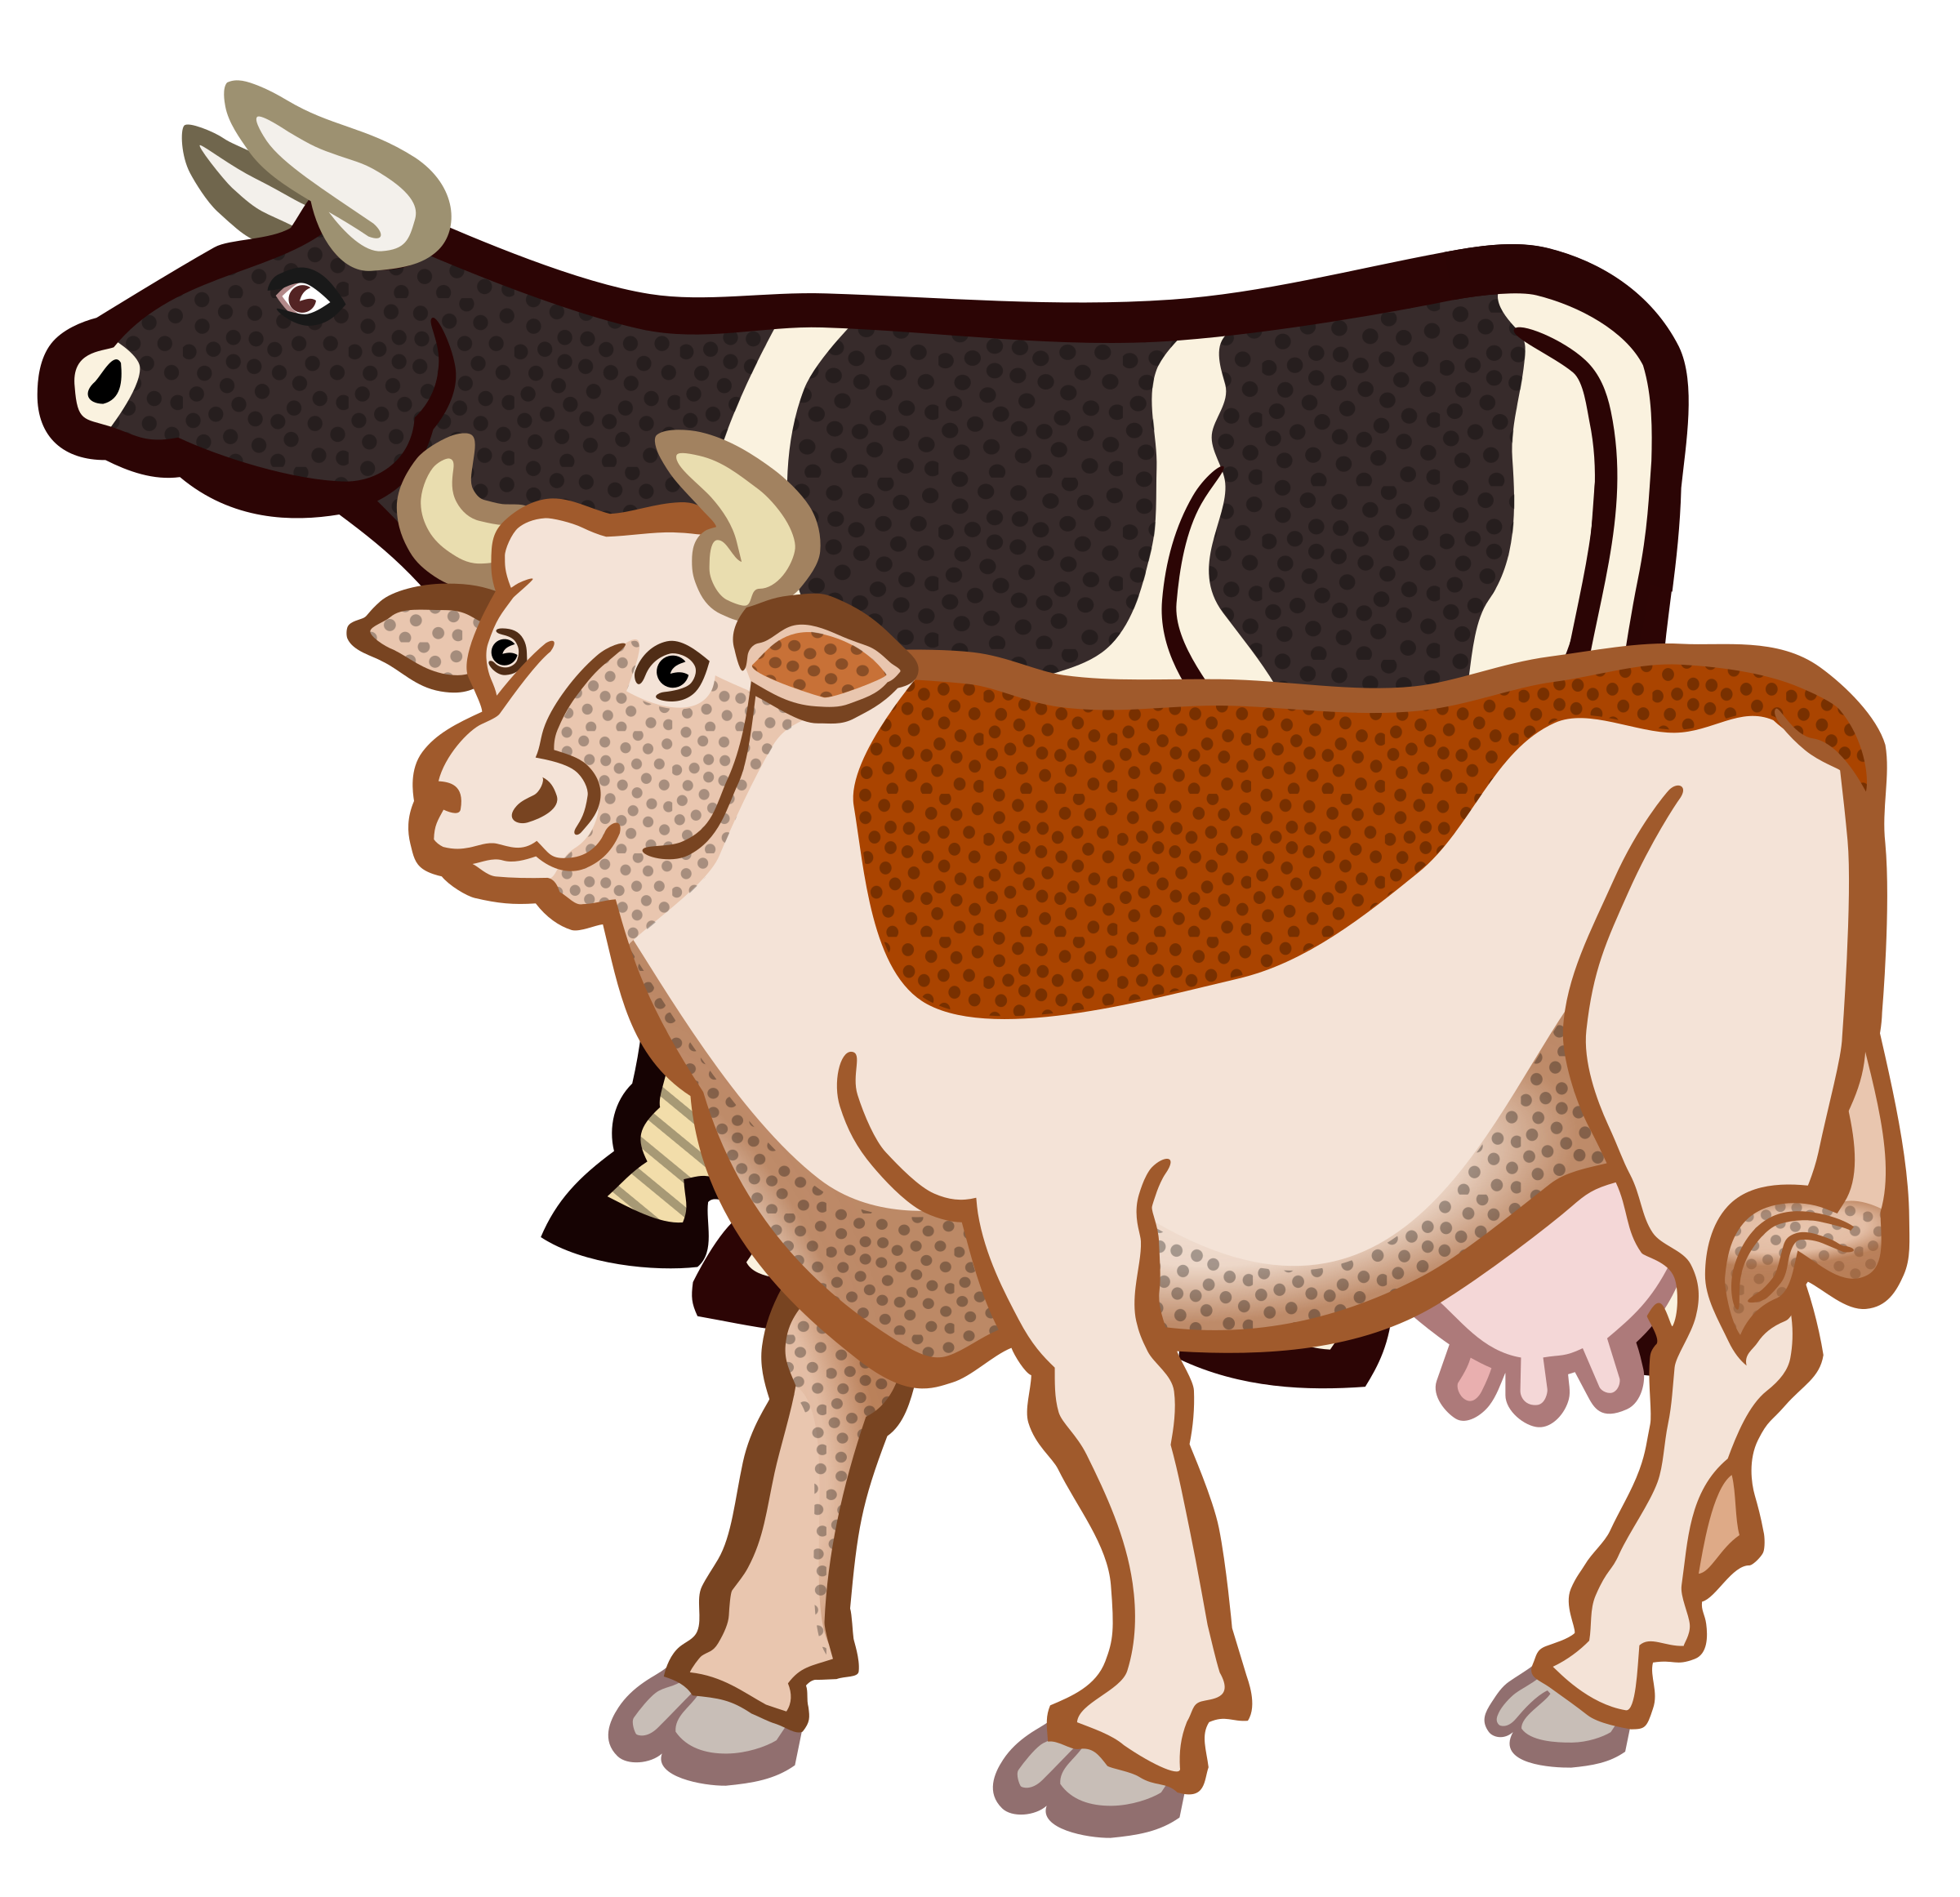 Two Cows Vector graphics image - Free stock photo - Public ...